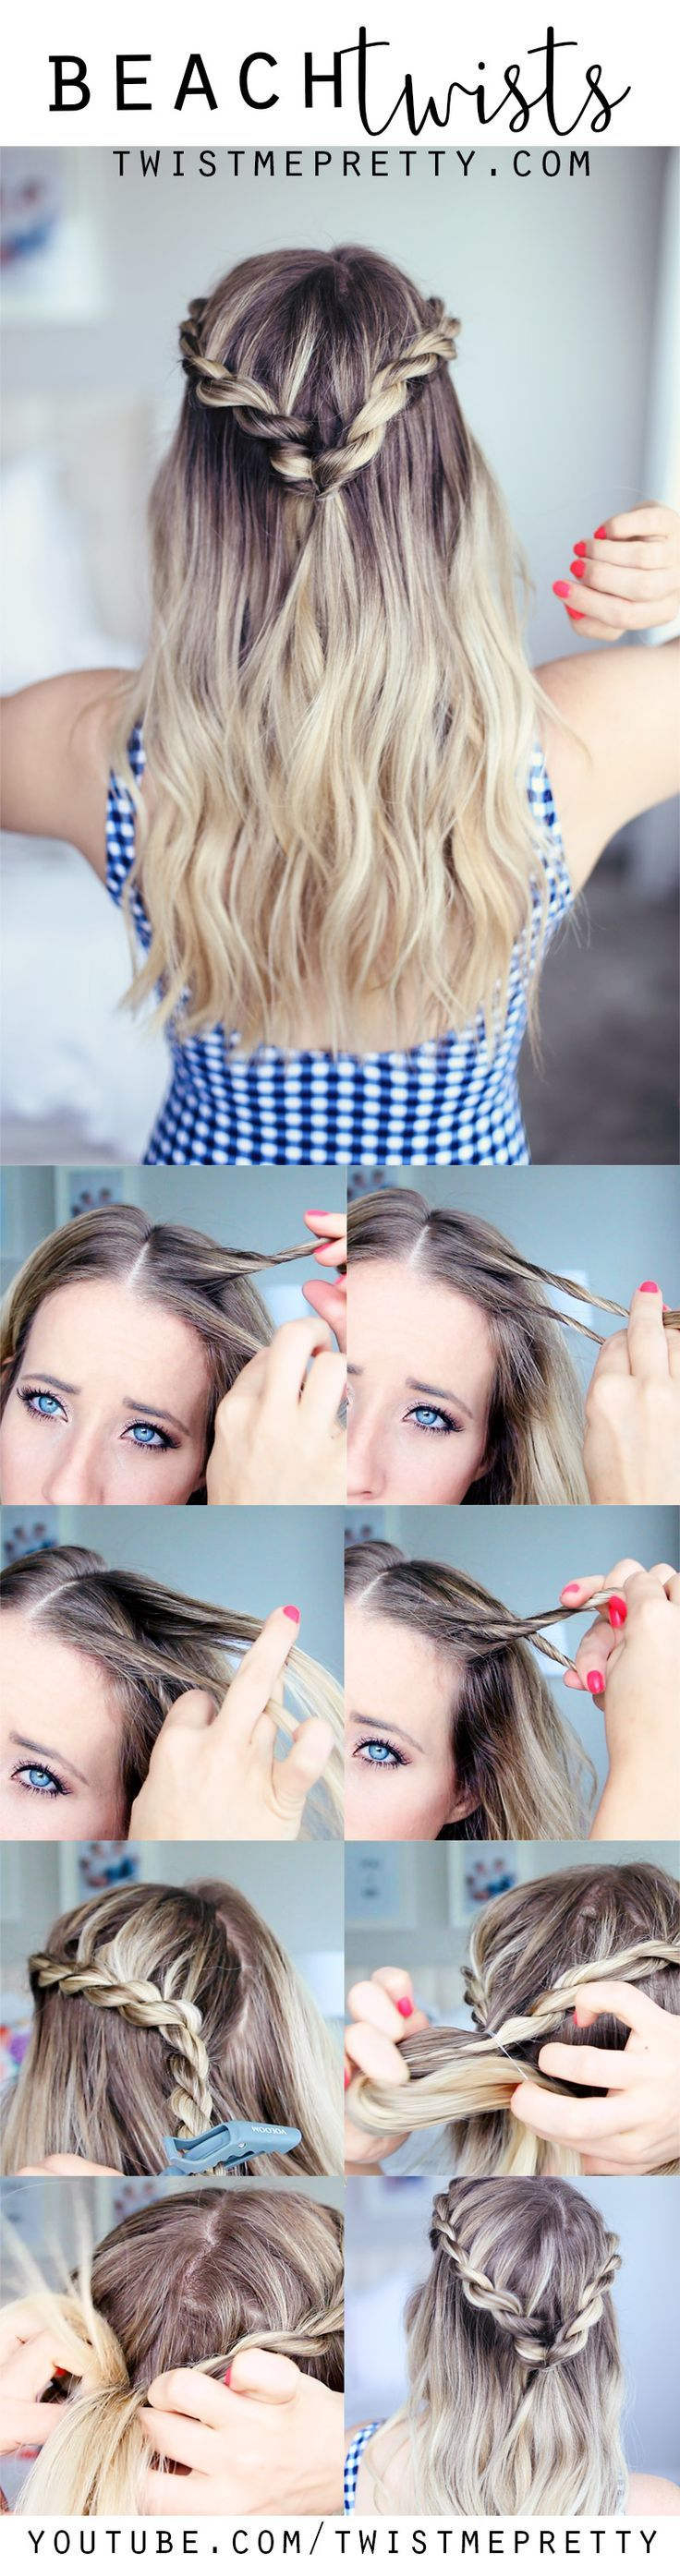 Cute summer twists twist hairstyles beach and hair style